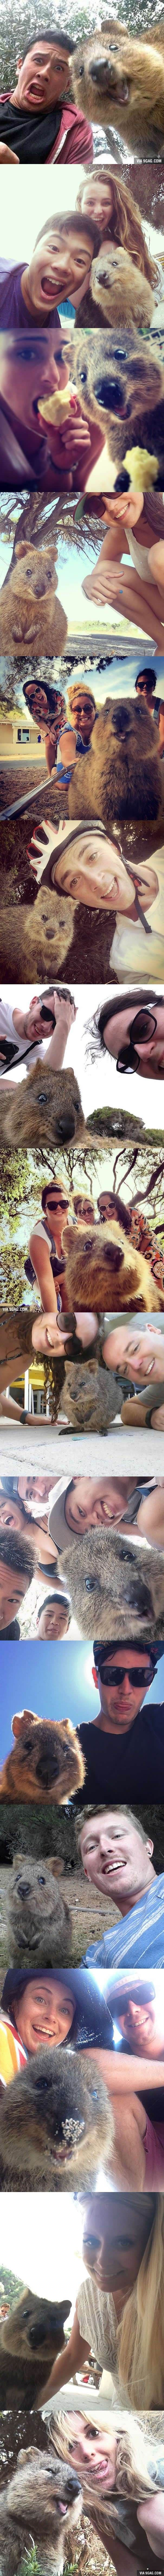 Quokka Selfie Is Cutest Trend In Australia Right Now!